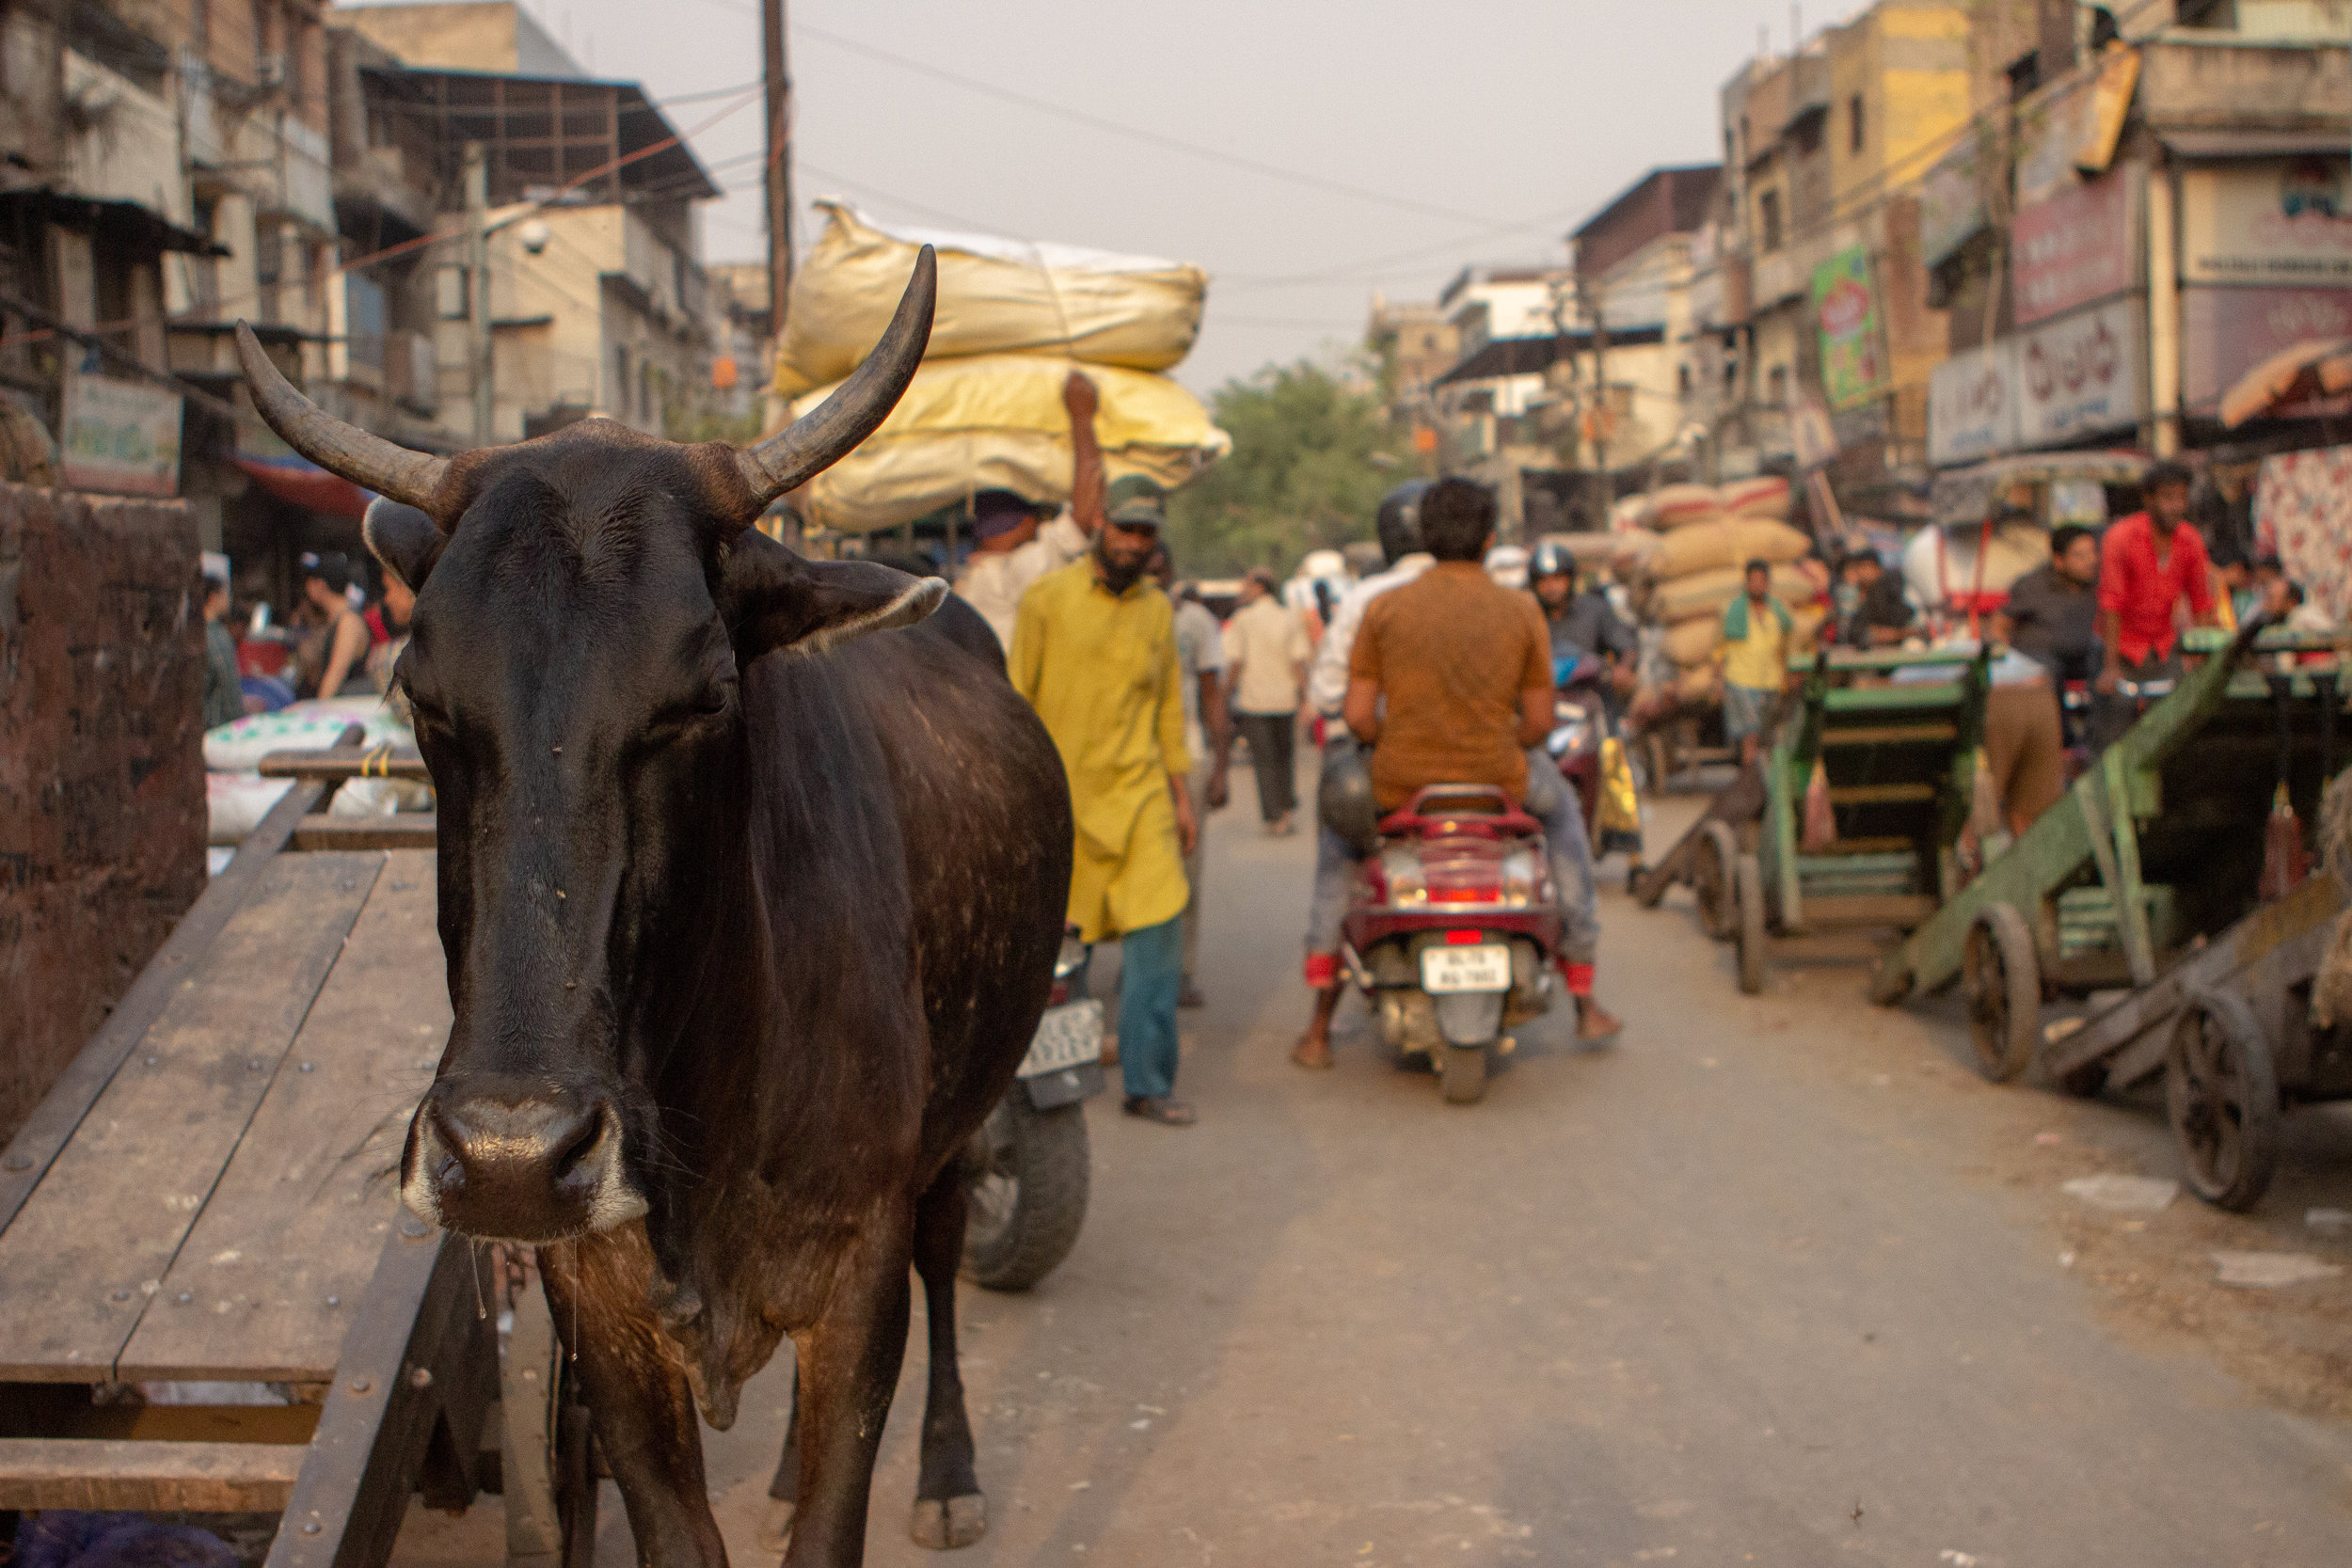 Capital Gains:   Humans aren't the only animals who support the market economy. The controlled chaos of the streets serves as the backdrop in the suffocating heat, where those on two legs and four, earn their means to survive with no reprieve between day and night.